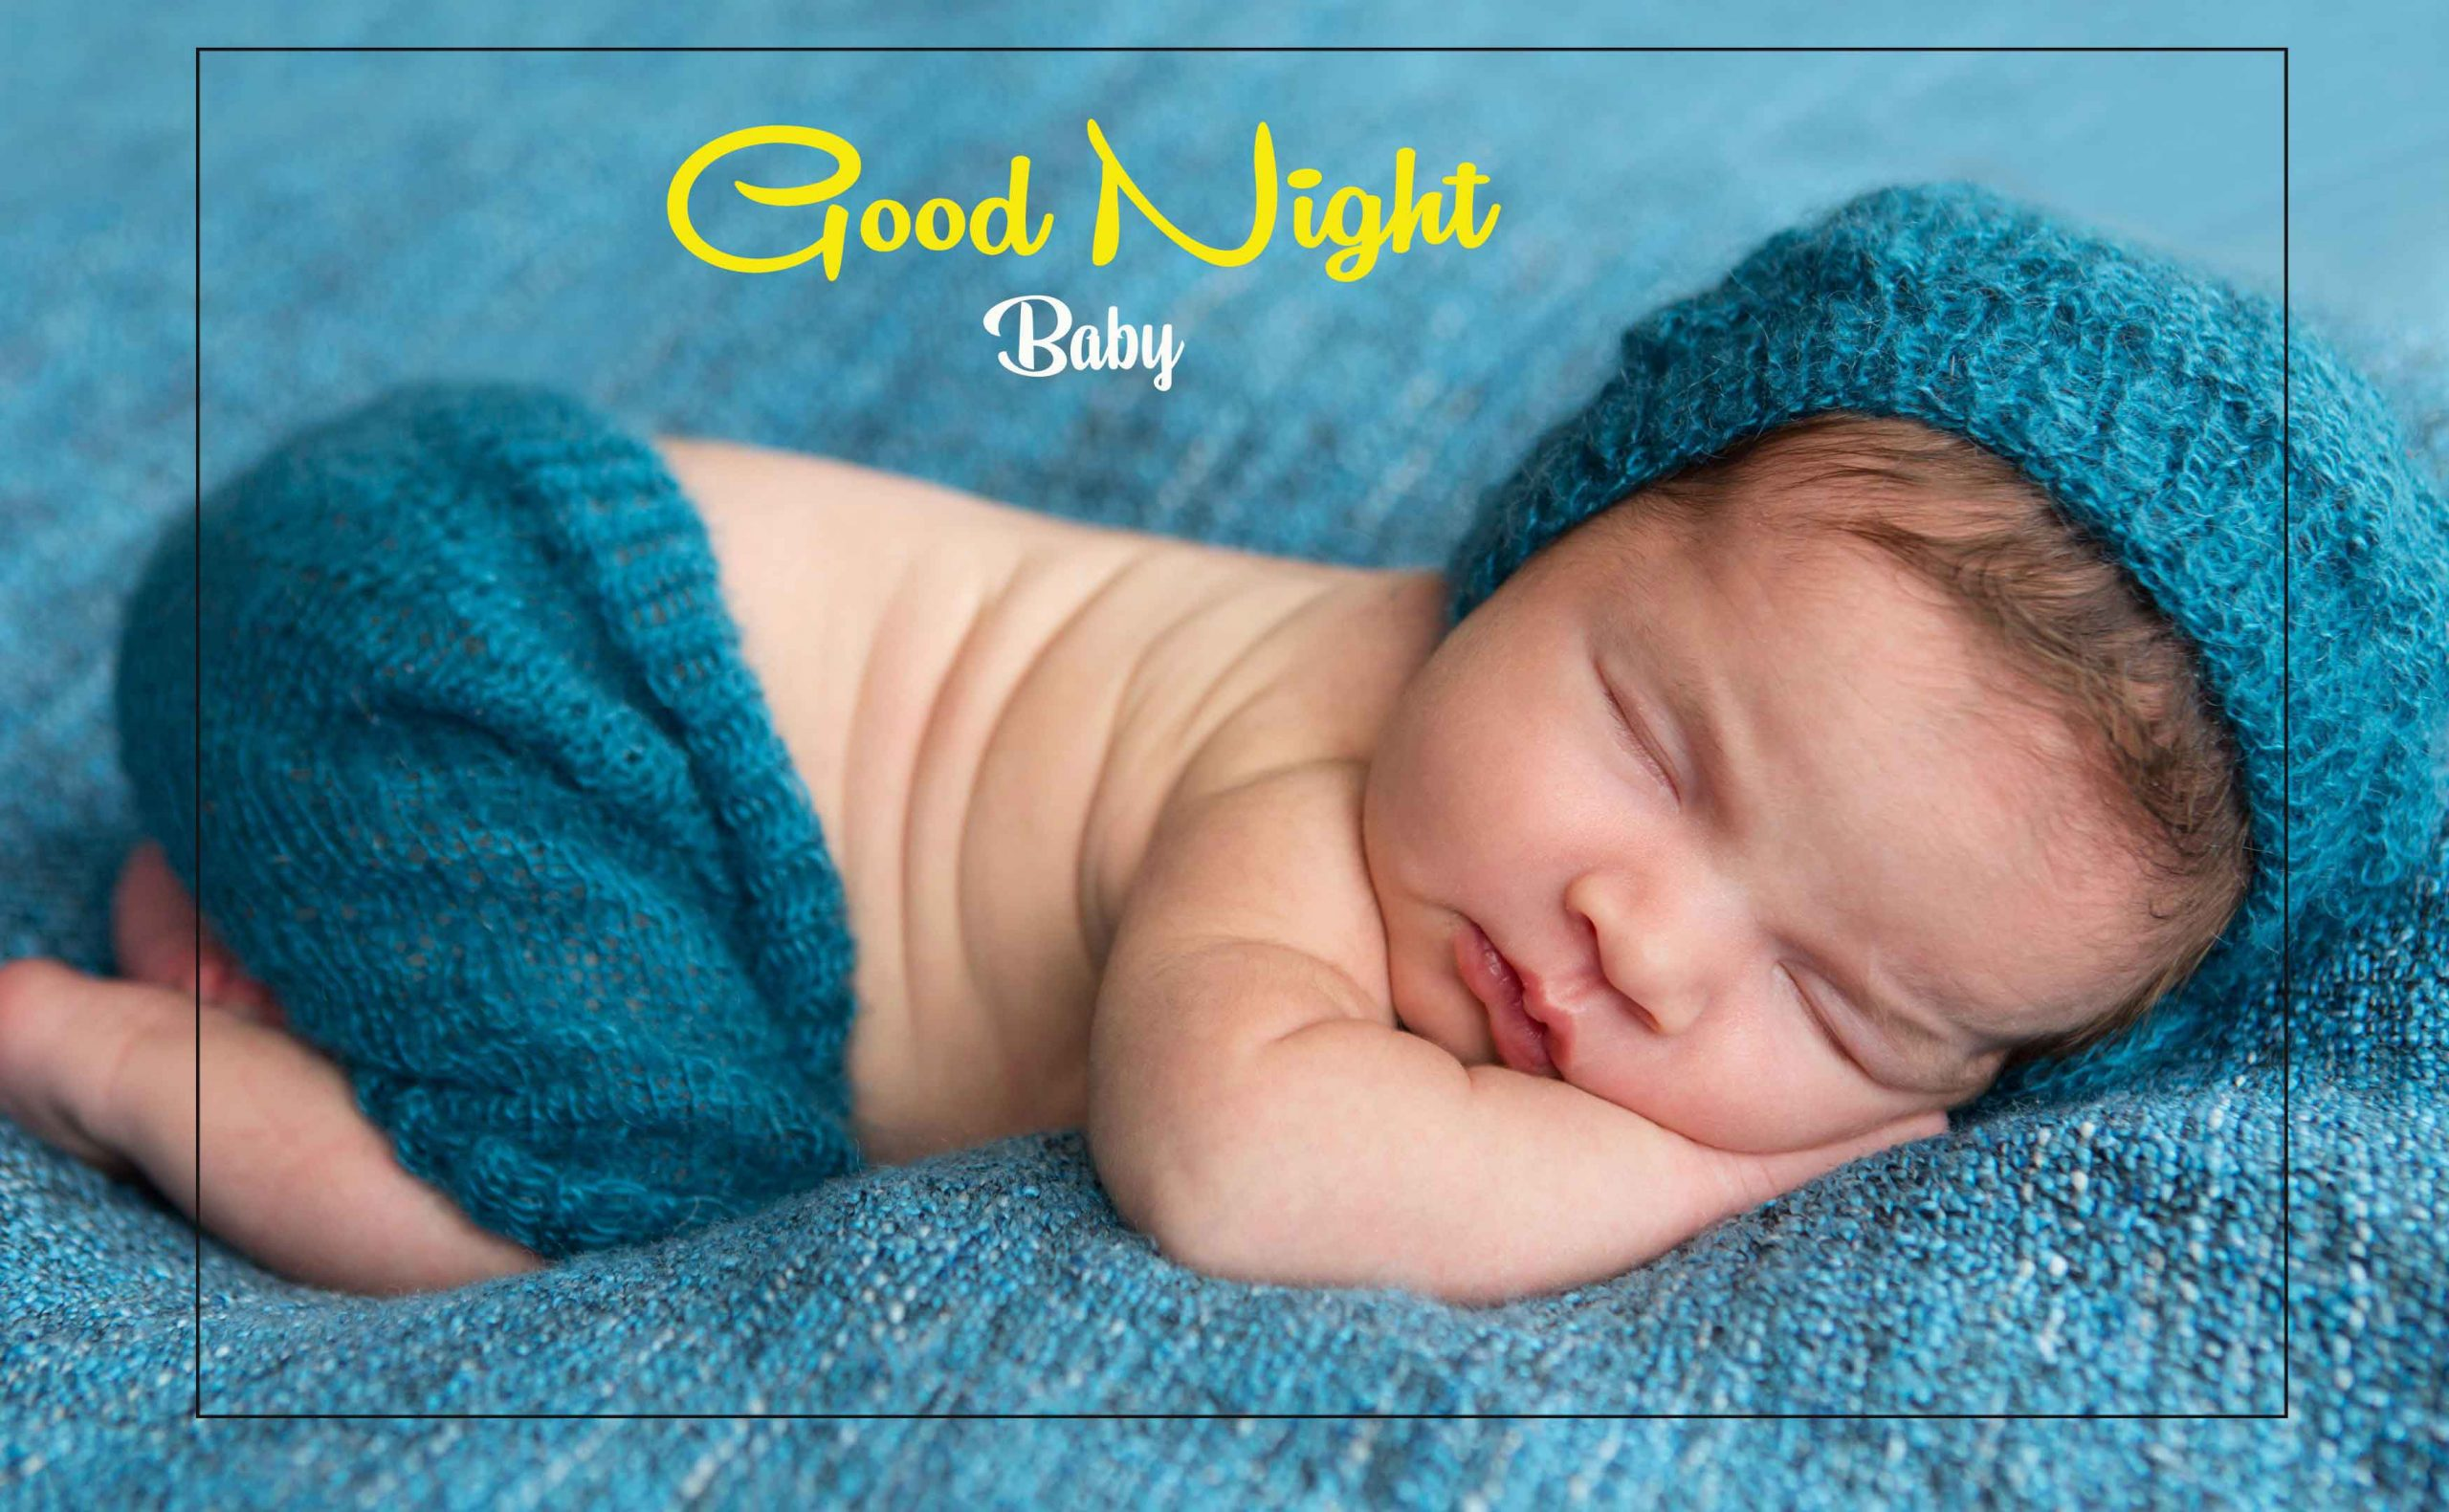 Top HD good night cute baby Images for Whatsapp